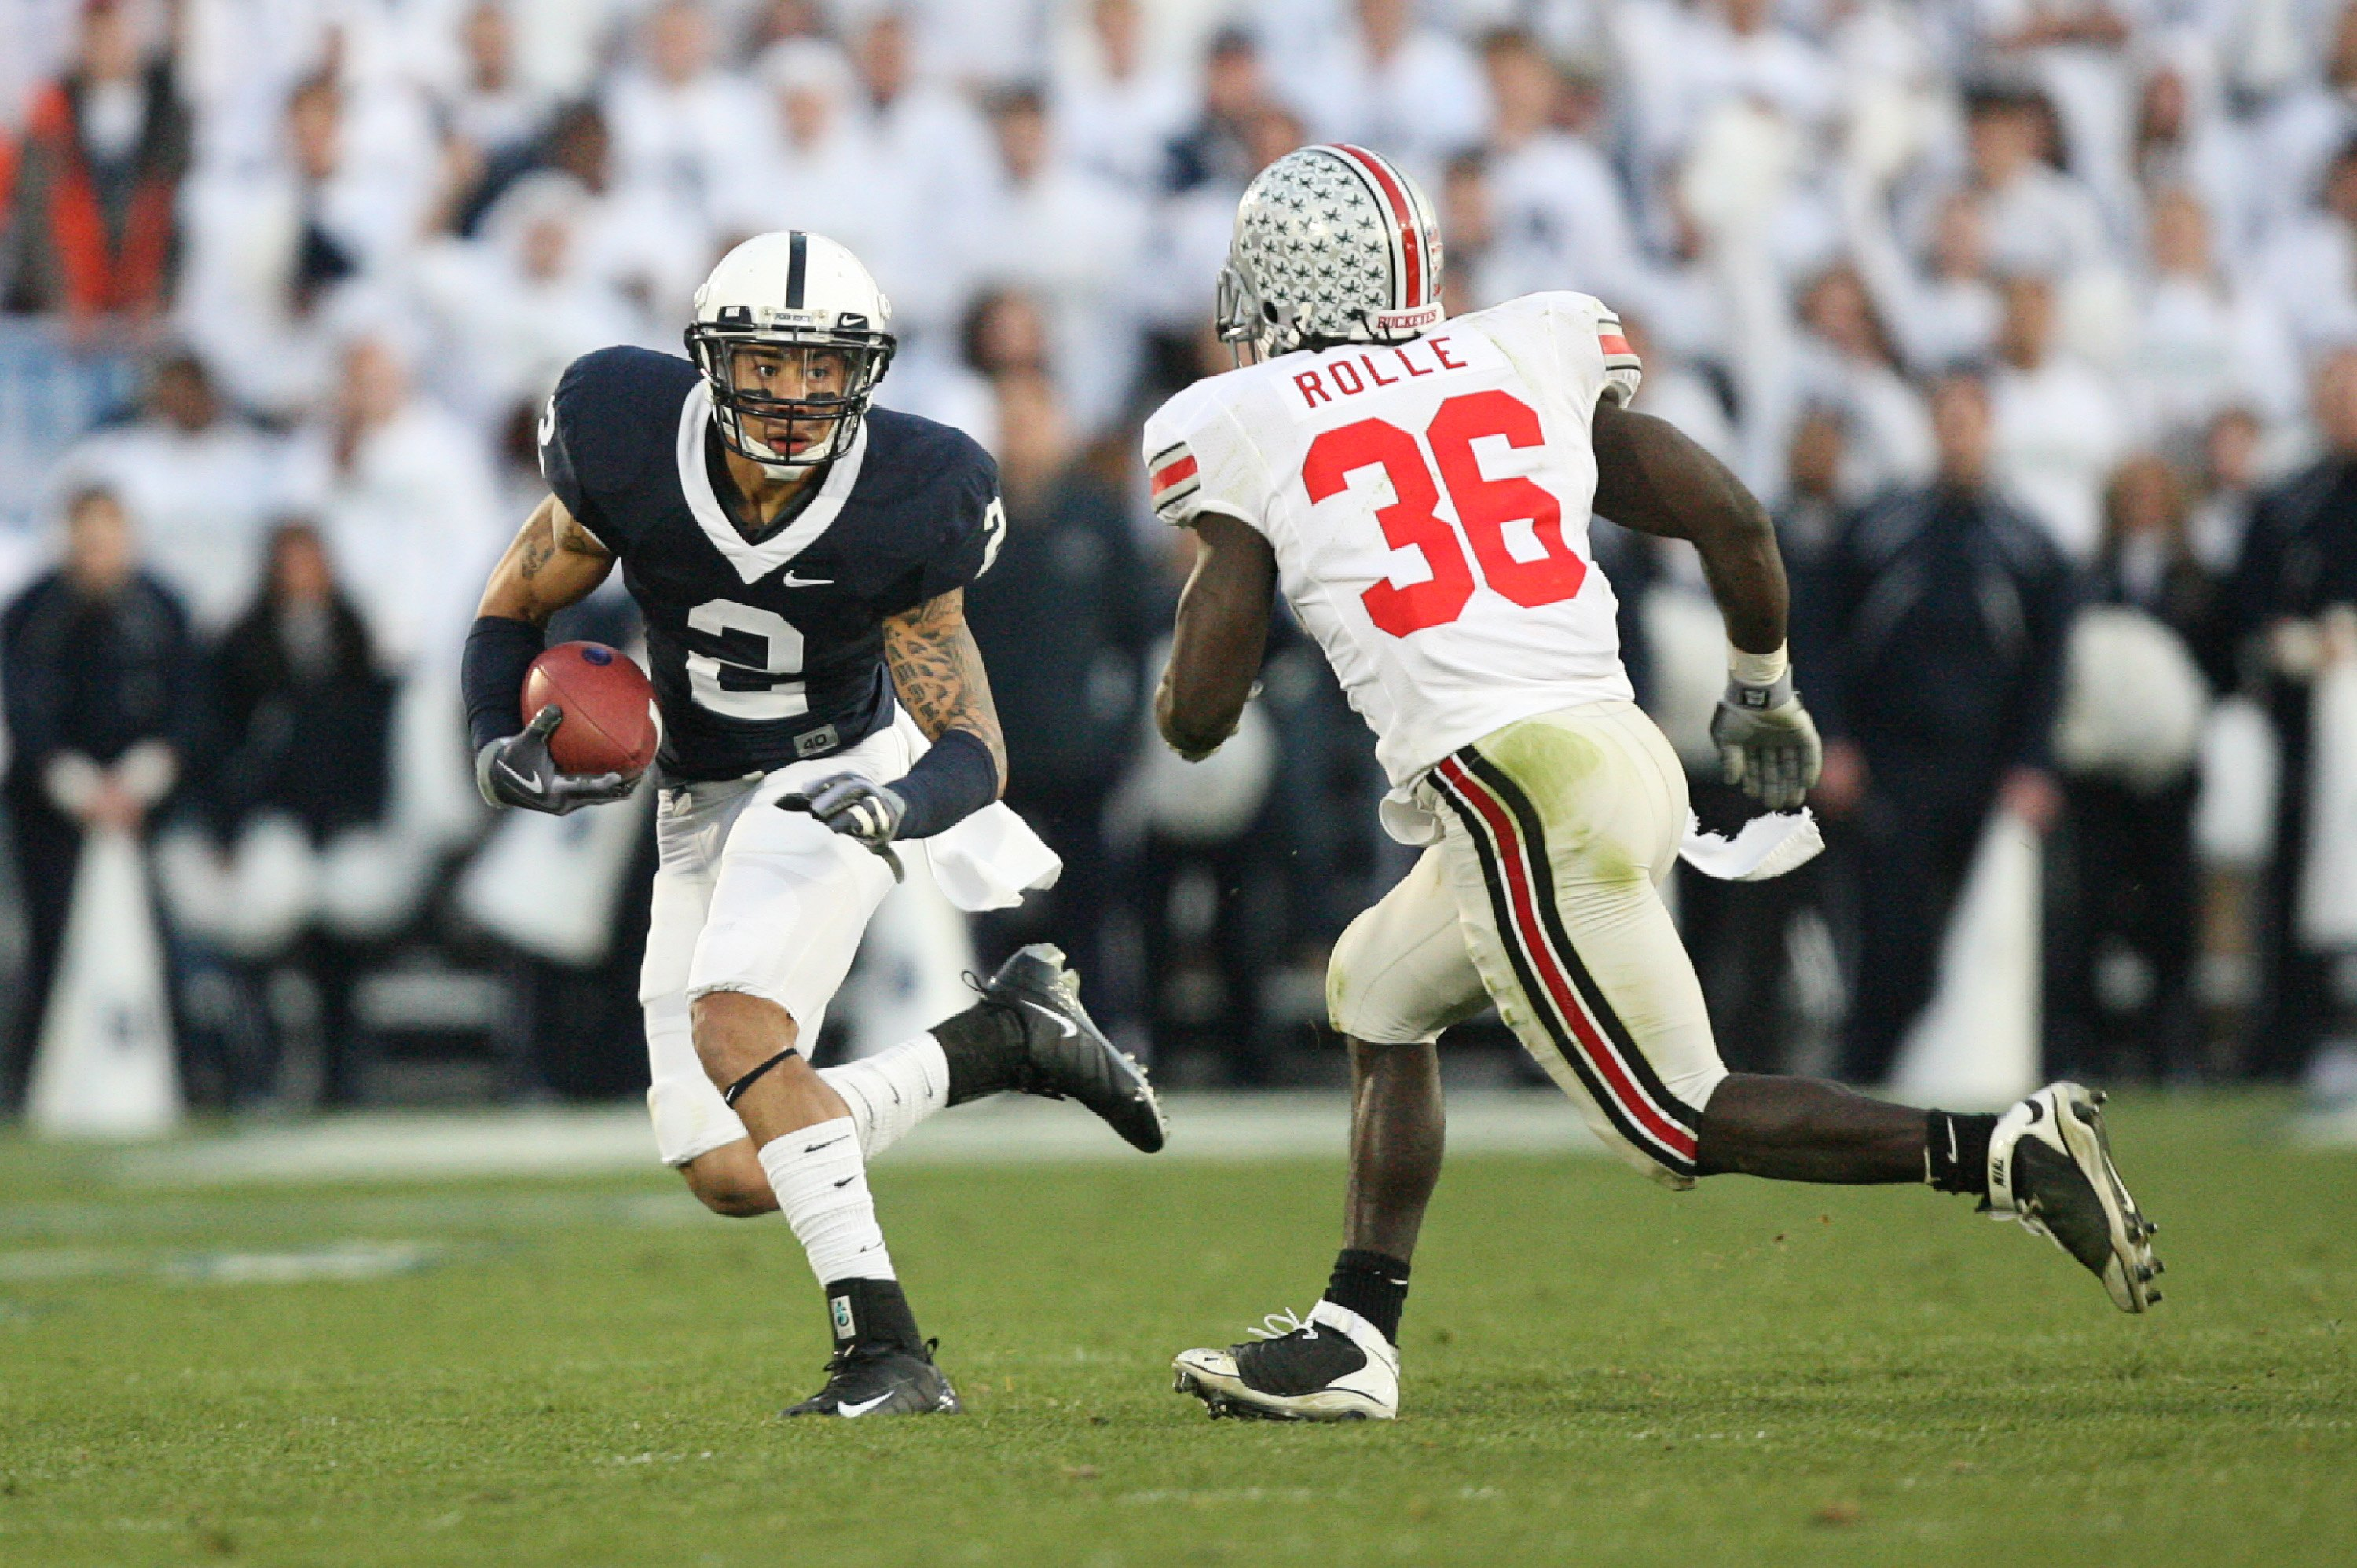 STATE COLLEGE, PA - NOVEMBER 7: Wide receiver Chaz Powell #2 of the Penn State Nittany Lions runs with the ball as linebacker Brian Rolle #36 of the Ohio State Buckeyes pursues during a game on November 7, 2009 at Beaver Stadium in State College, Pennsylv